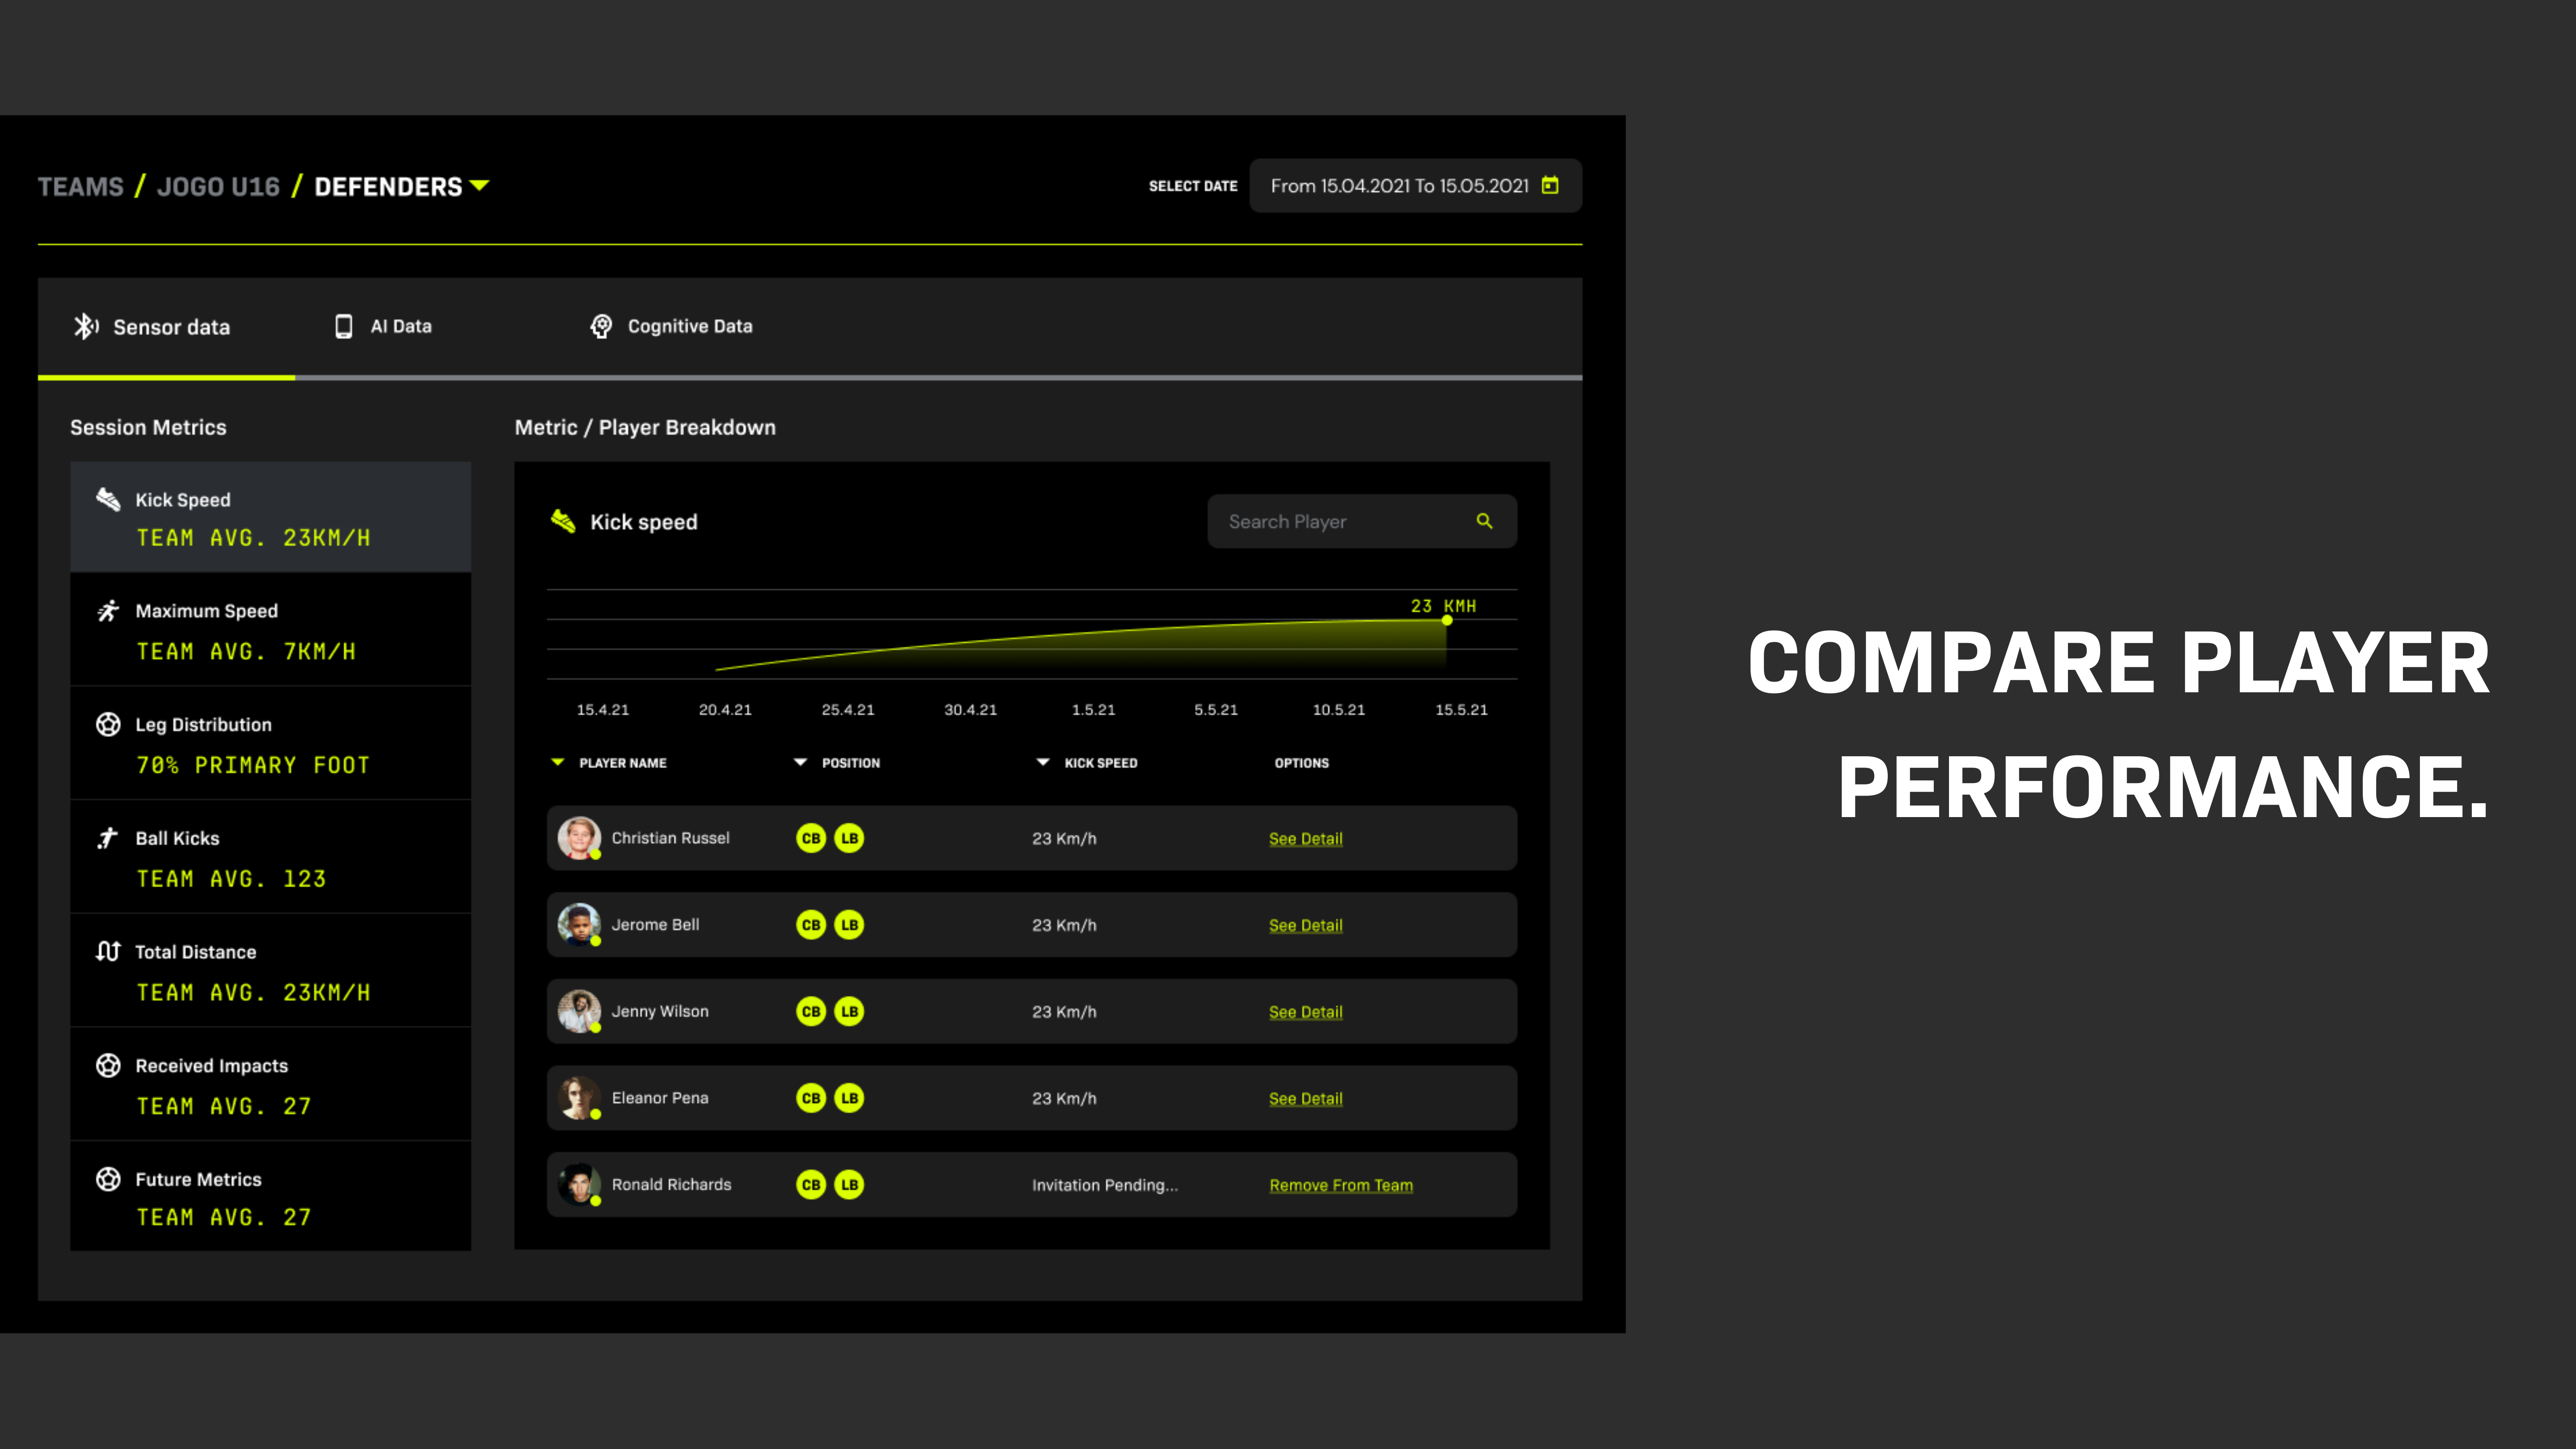 Compare player performance